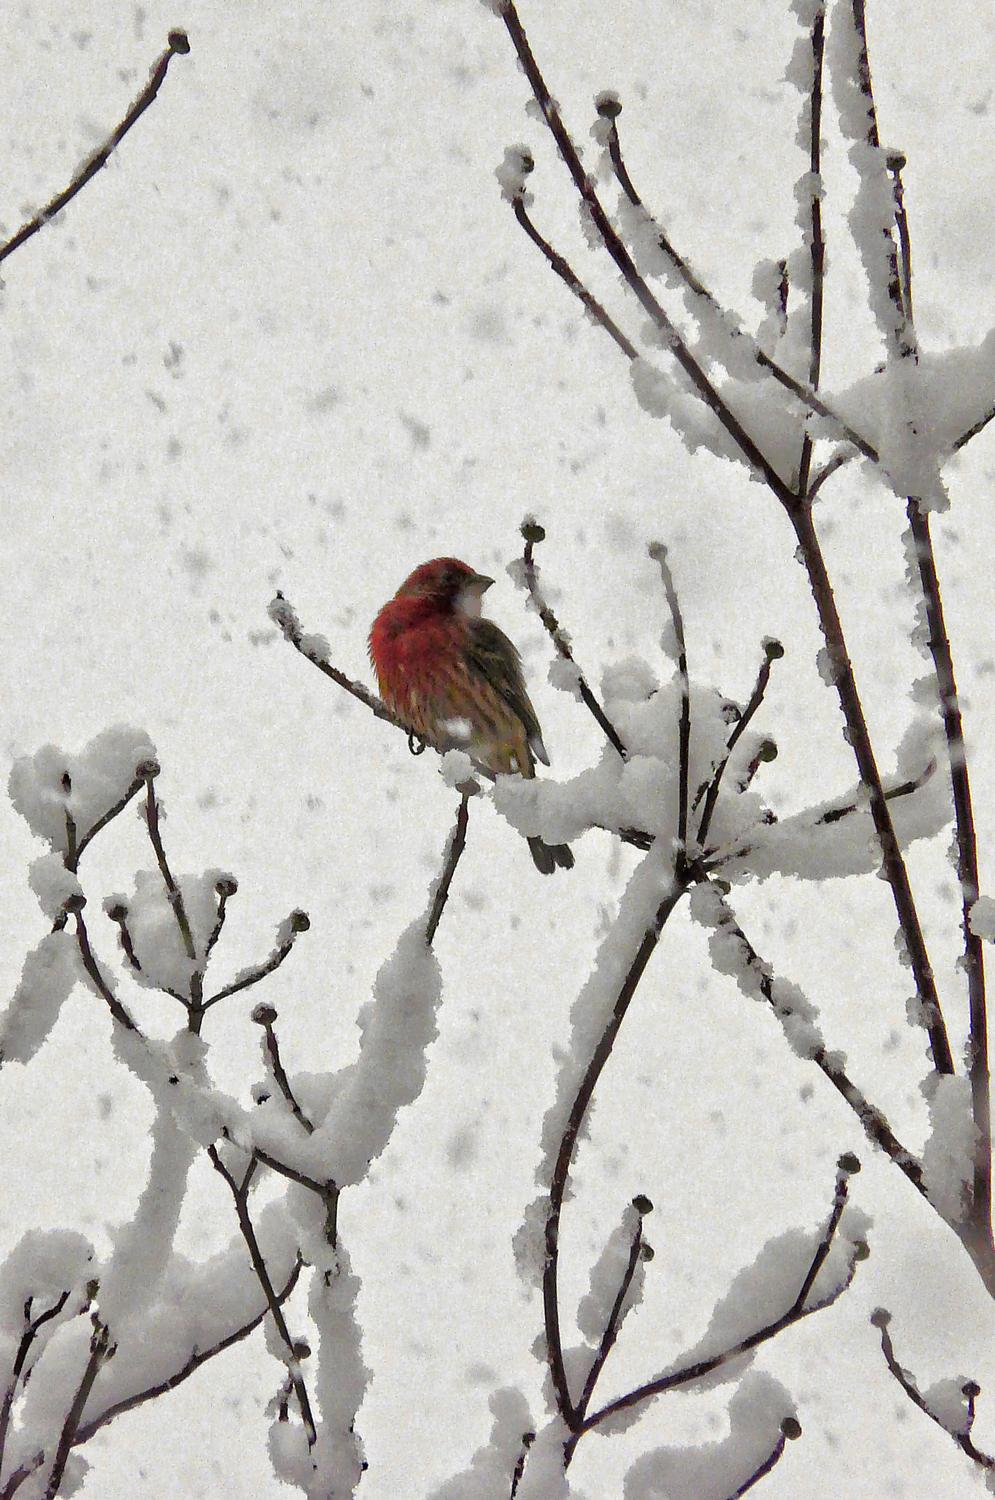 Red cardinal in tree against the white snow - Little red bird in a snowy tree - Techno-Impressionist Museum - Techno-Impressionism - art - beautiful - photo photography picture - by Tony Karp